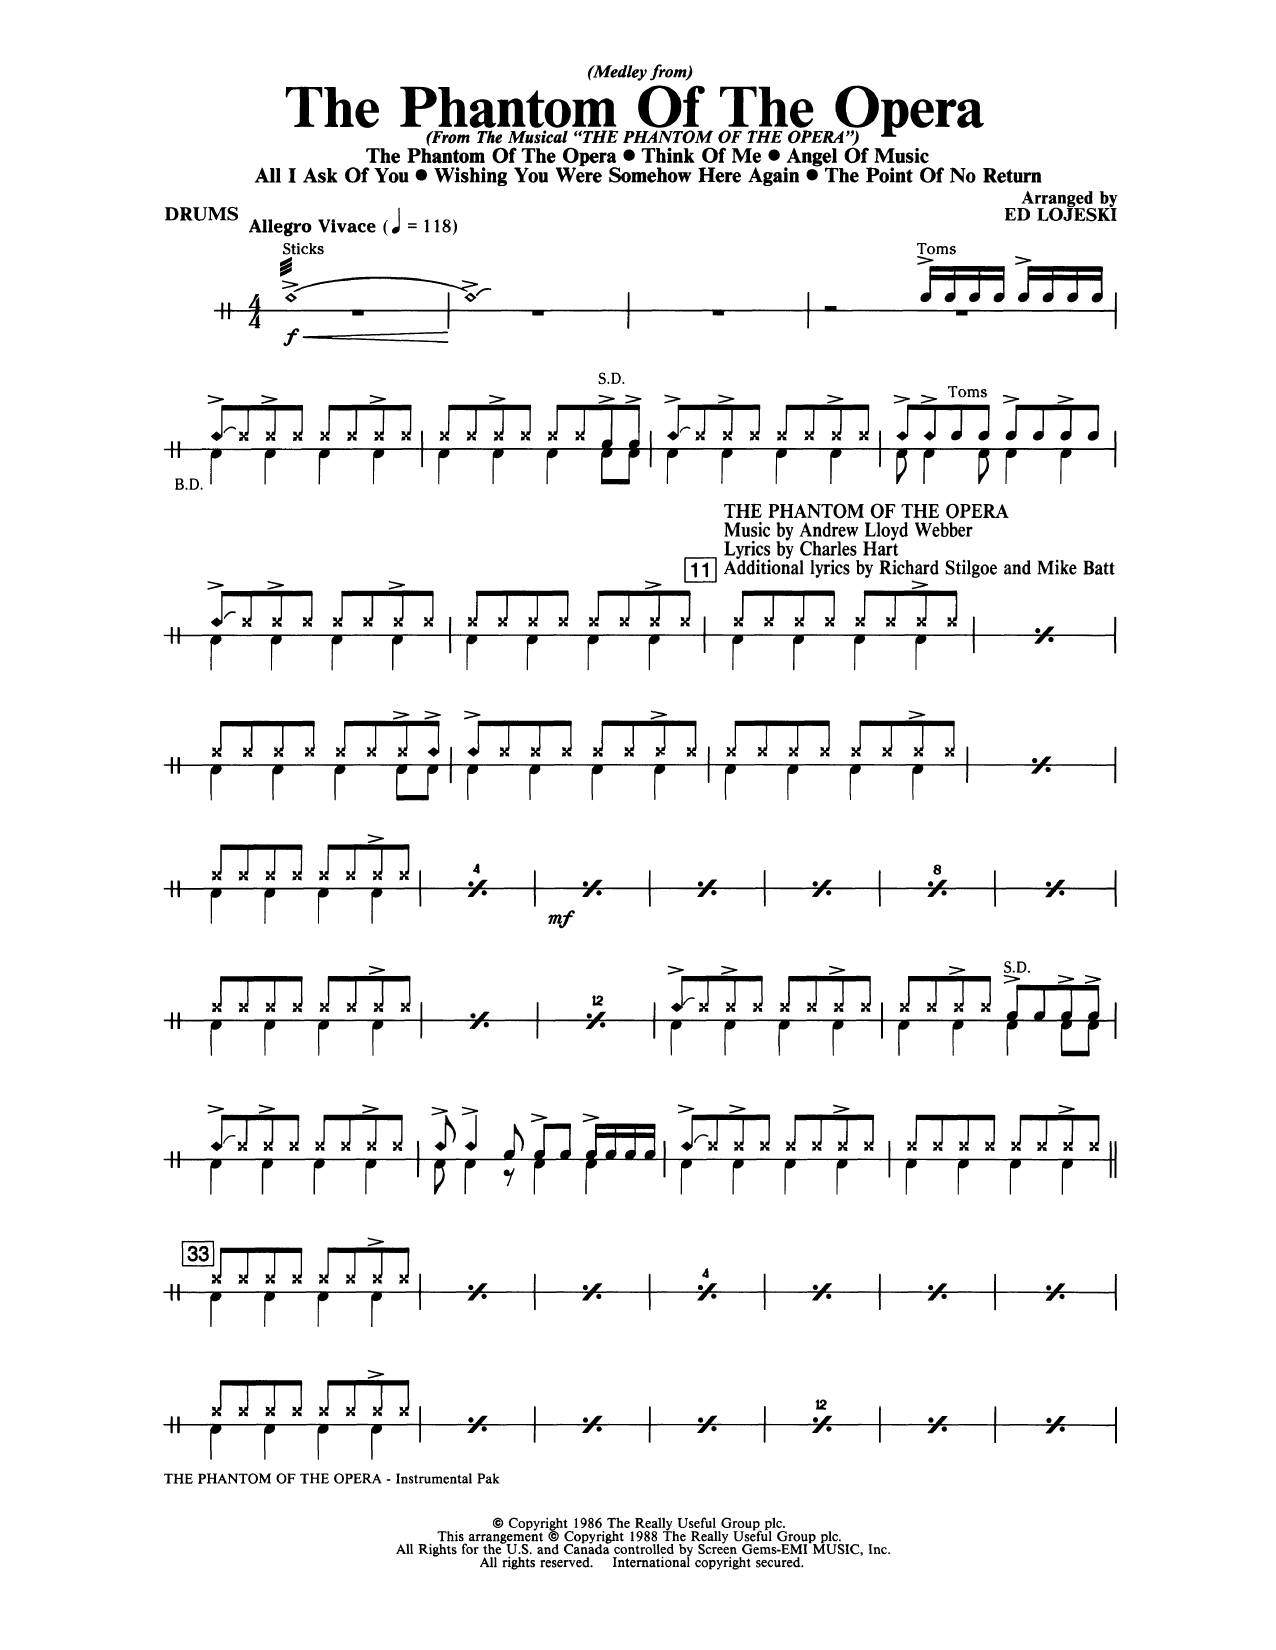 Barbra Streisand - Phantom Of The Opera, Medley From Instrumental Pak - Drums